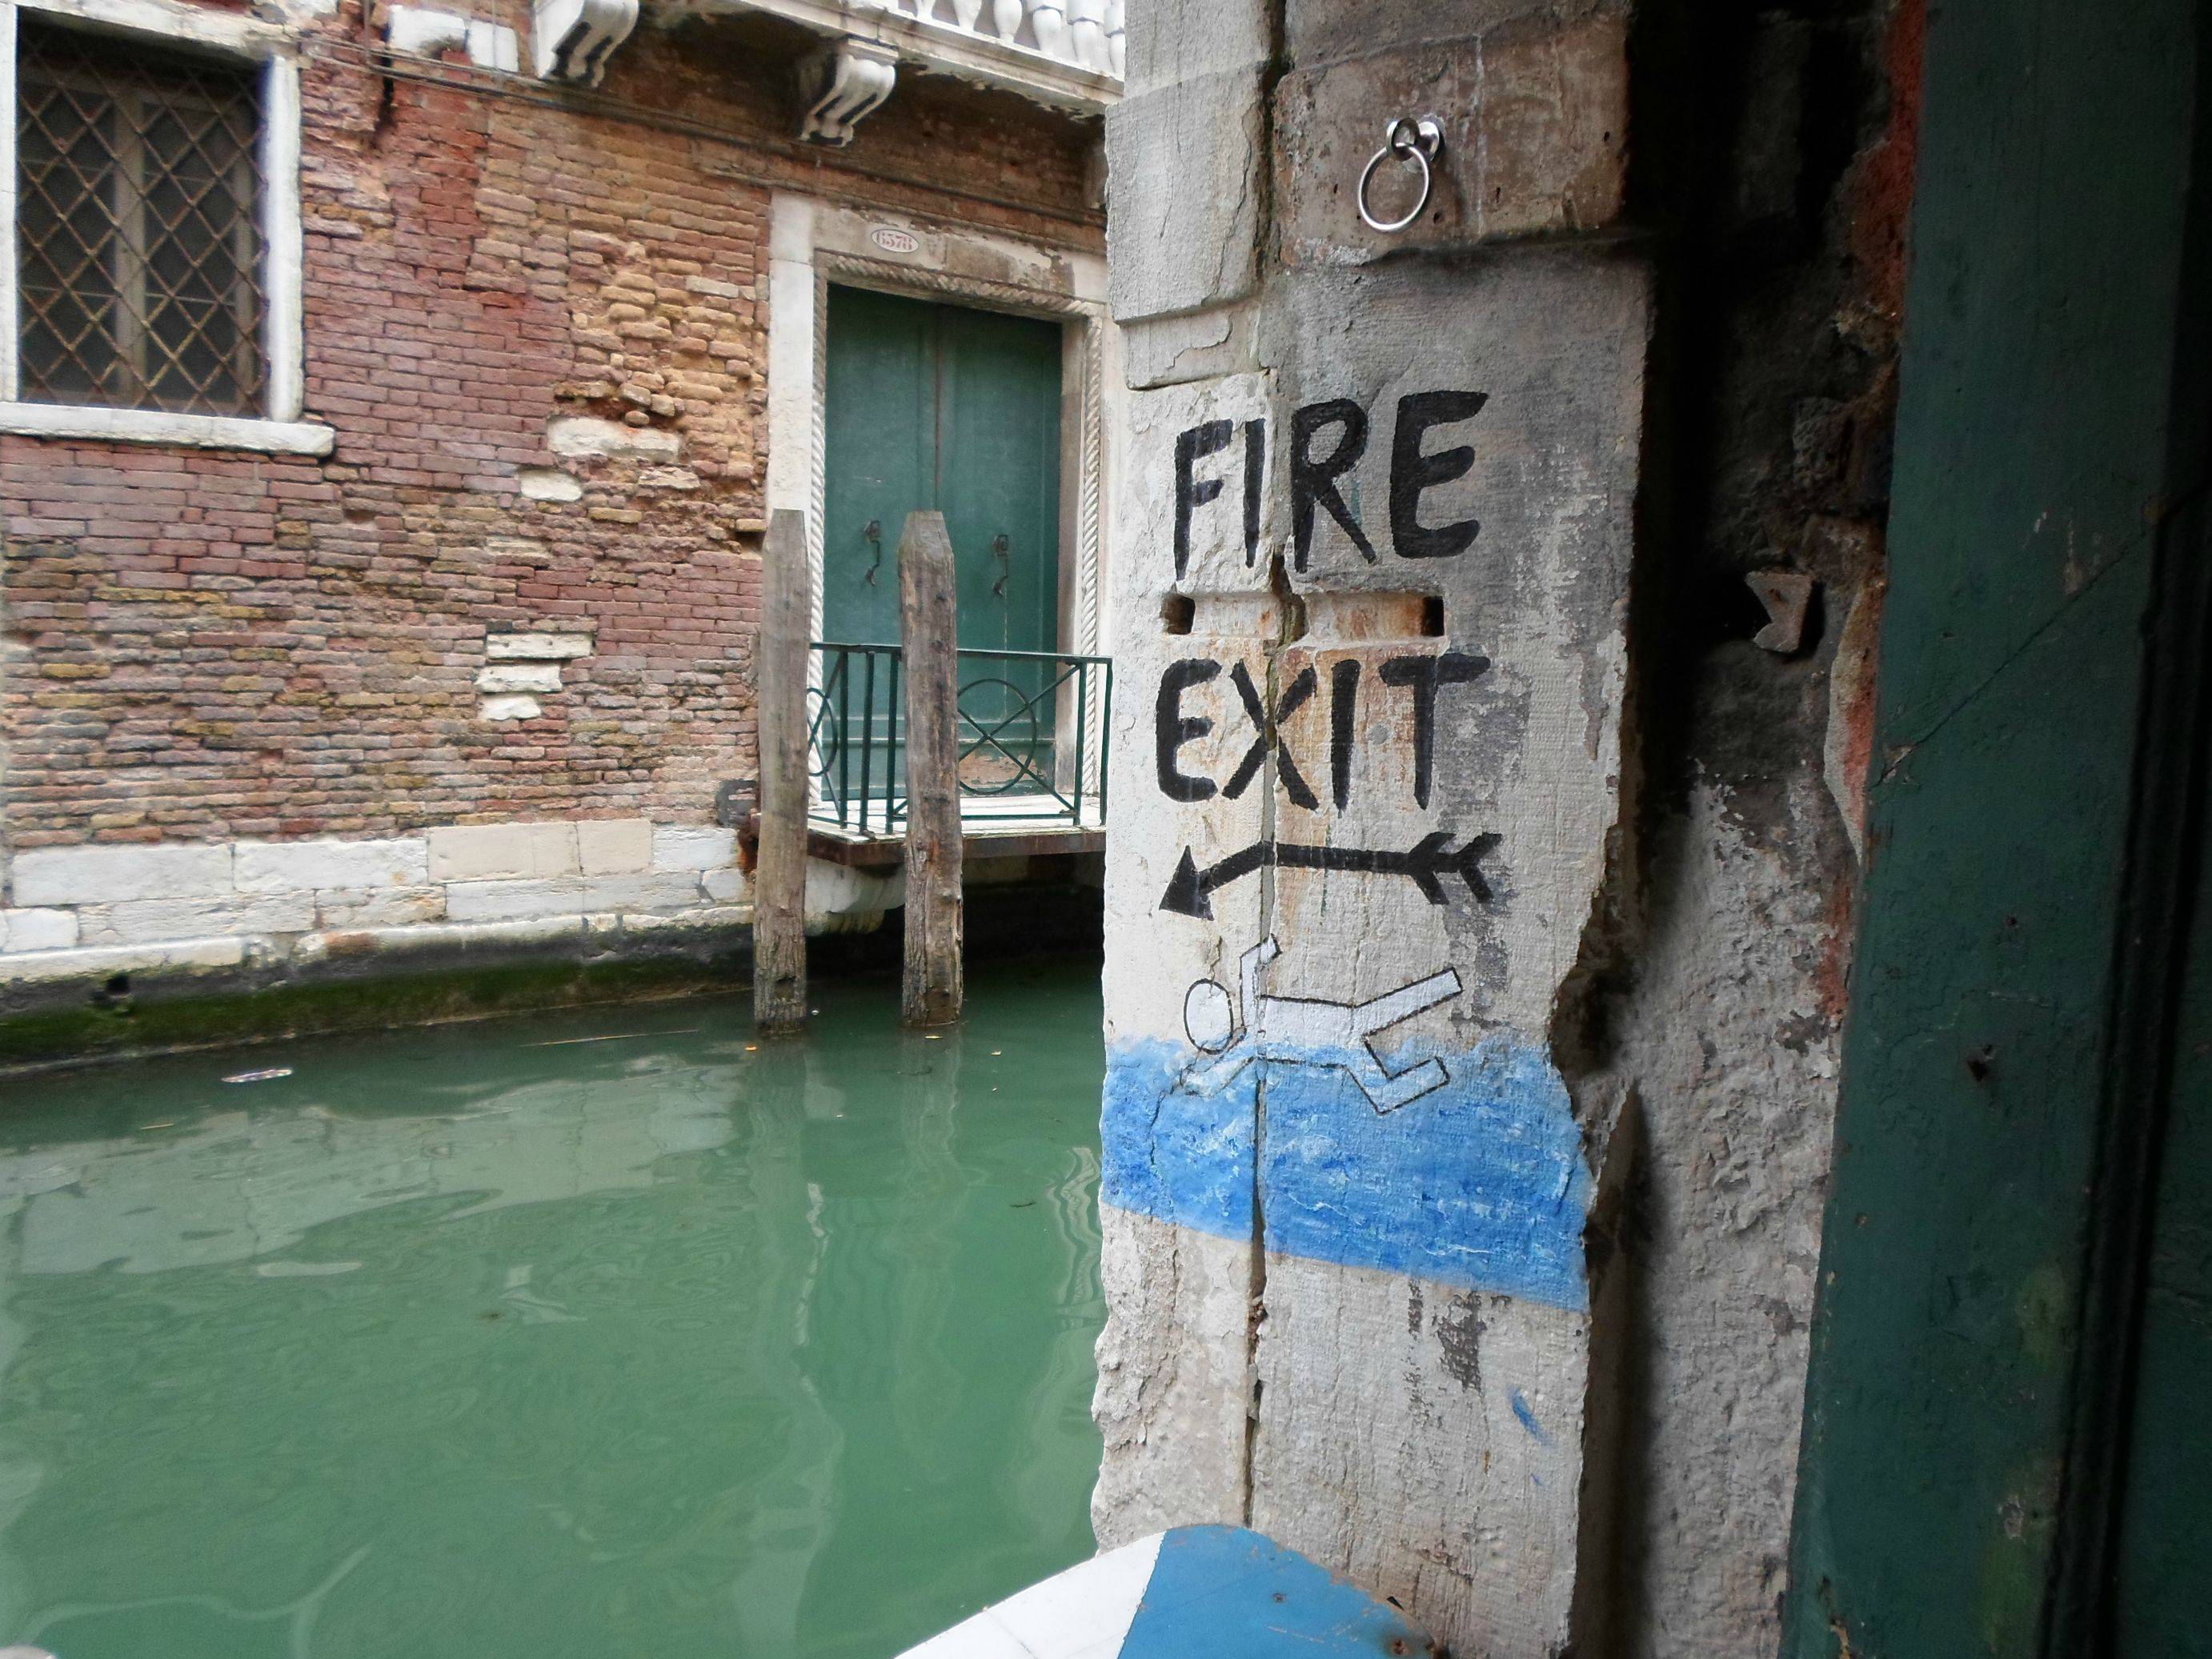 Fire exit, Venice style